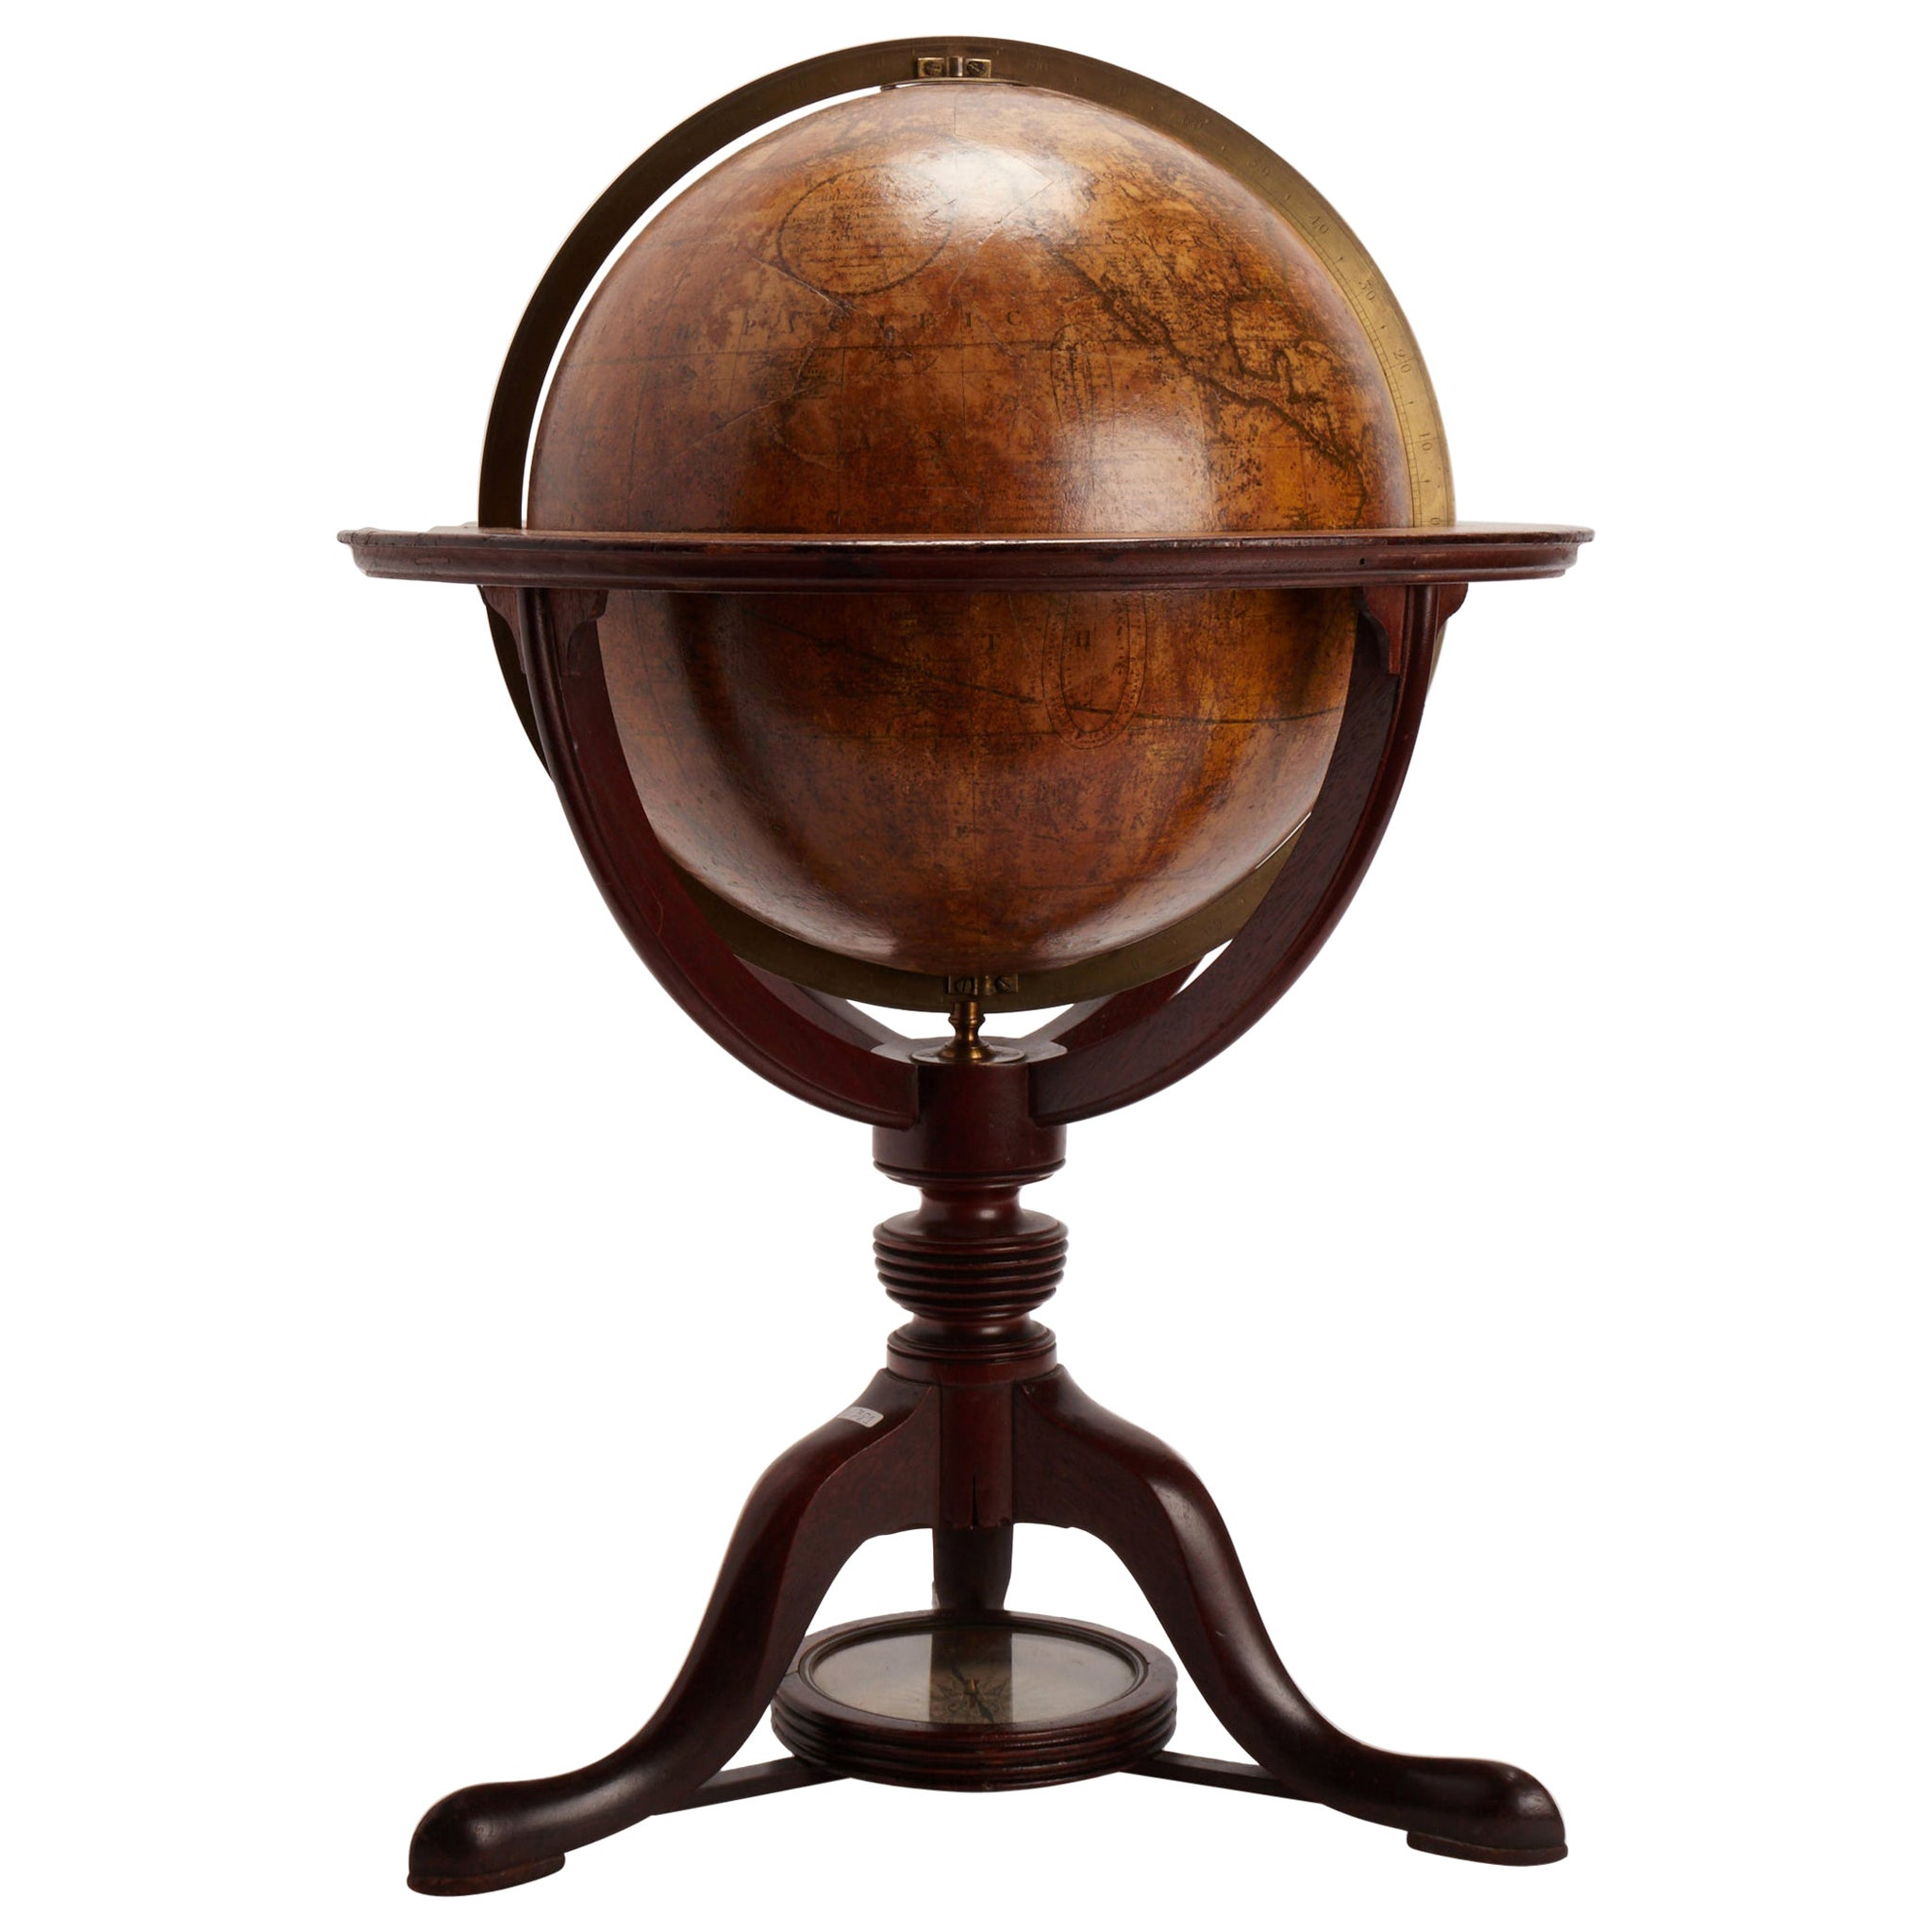 Terrestrial Globe Signed Cary, London, 1798